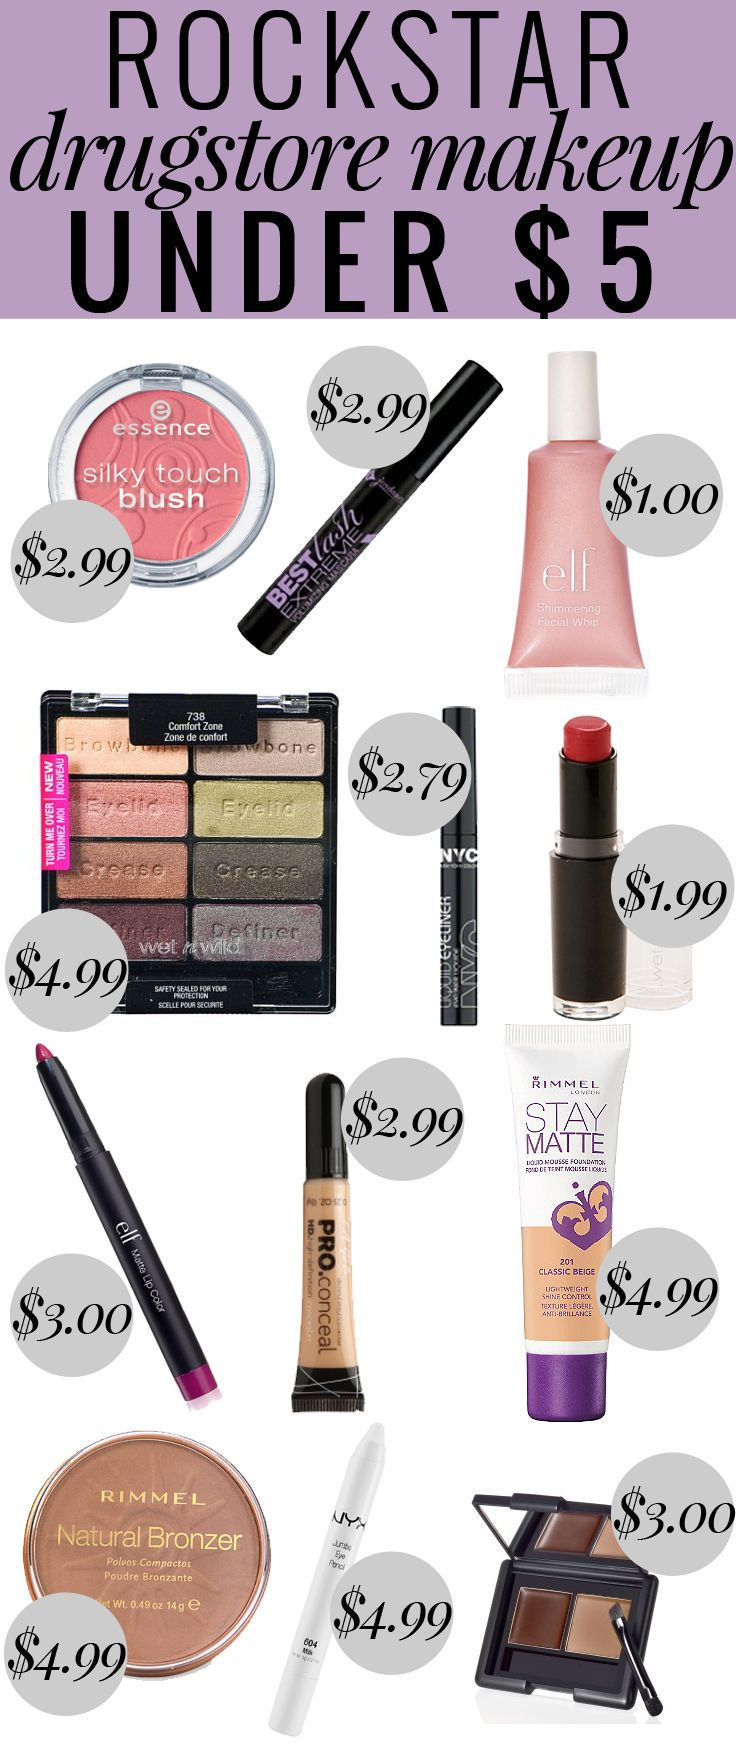 Rockstar Drugstore Makeup Under $5 - this list has everything for a full face of…